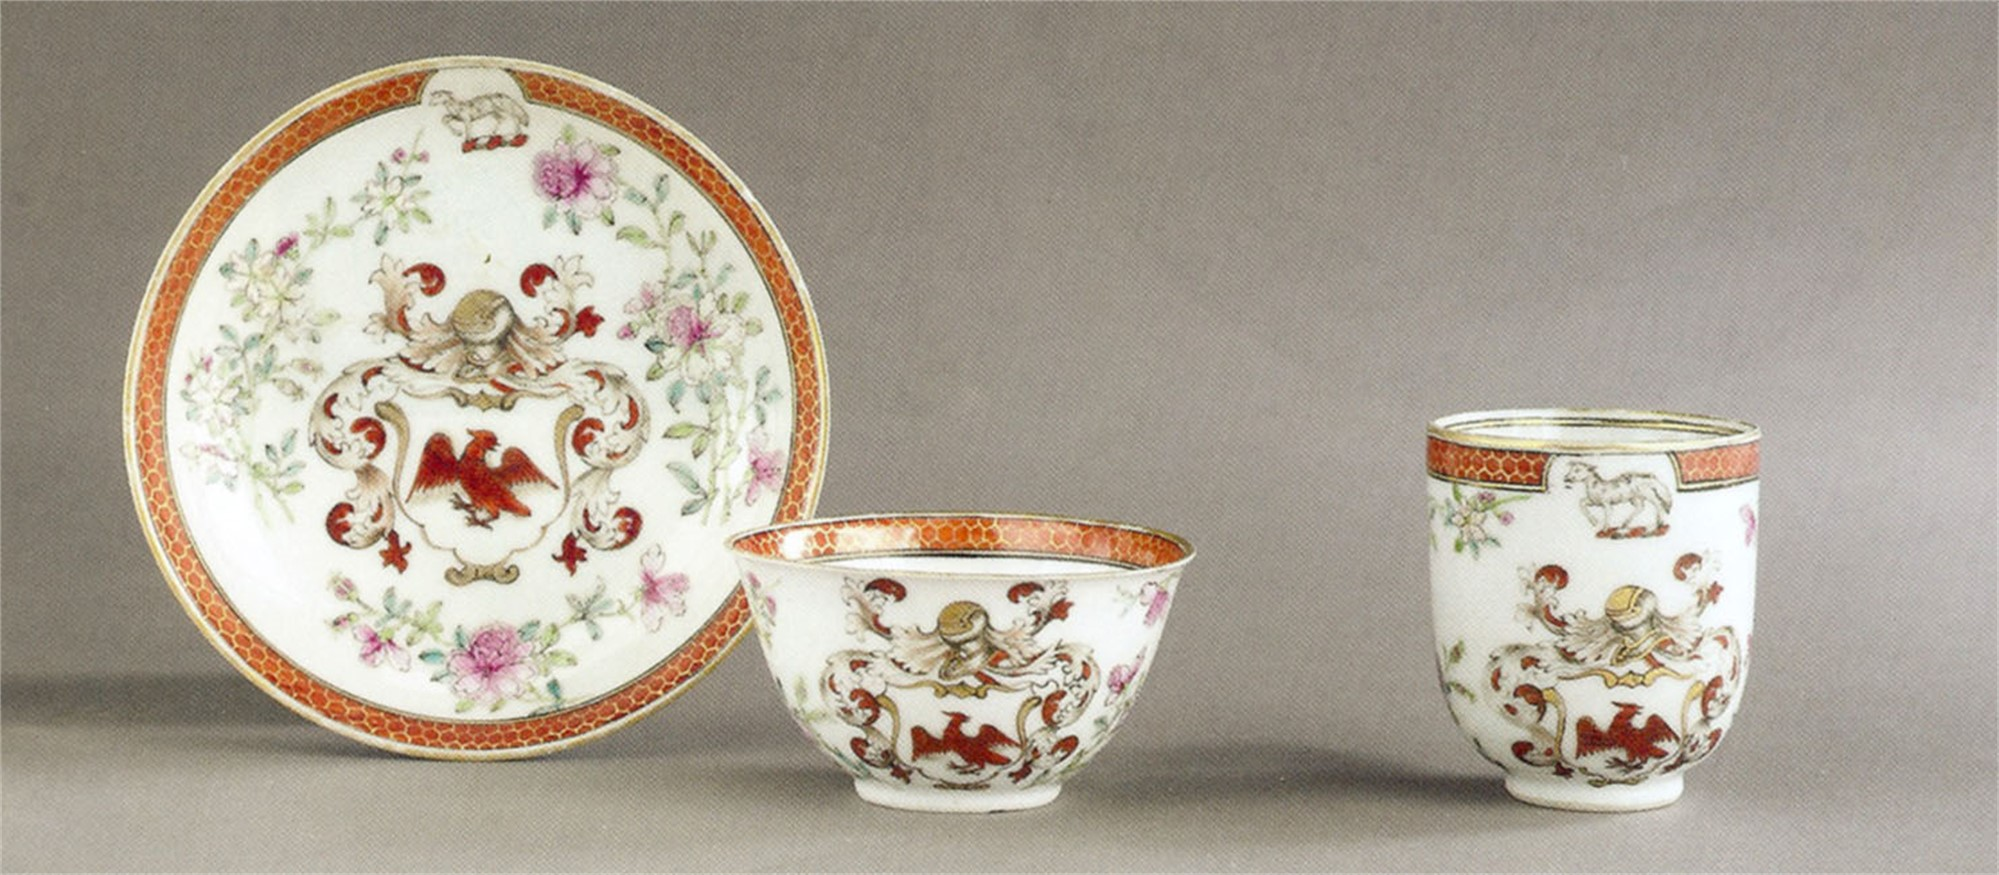 ARMORIAL TEABOWL, COFFEE CUP AND SAUCER